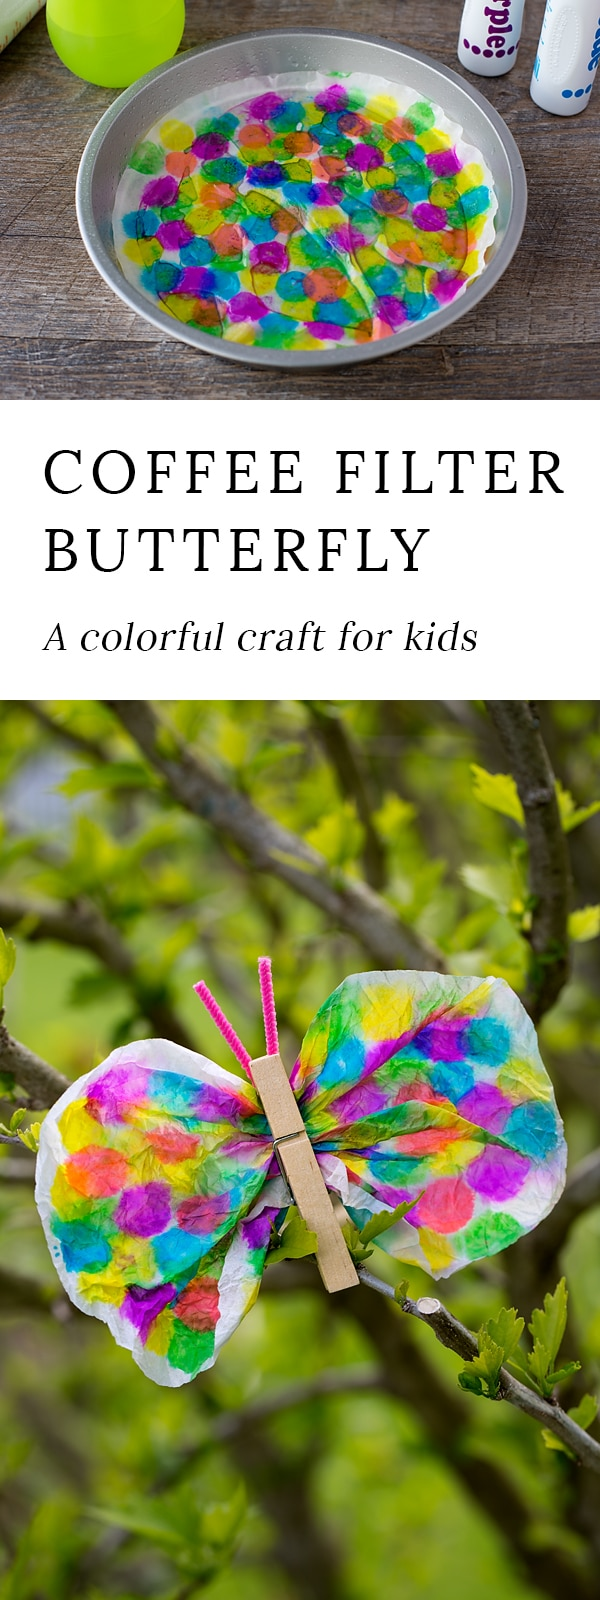 Not only is this Coffee Filter Butterfly Craft lovely, but it is packed with fine-motor skills. Dabbing, squeezing, scrunching, pinching…it's perfect for kids!